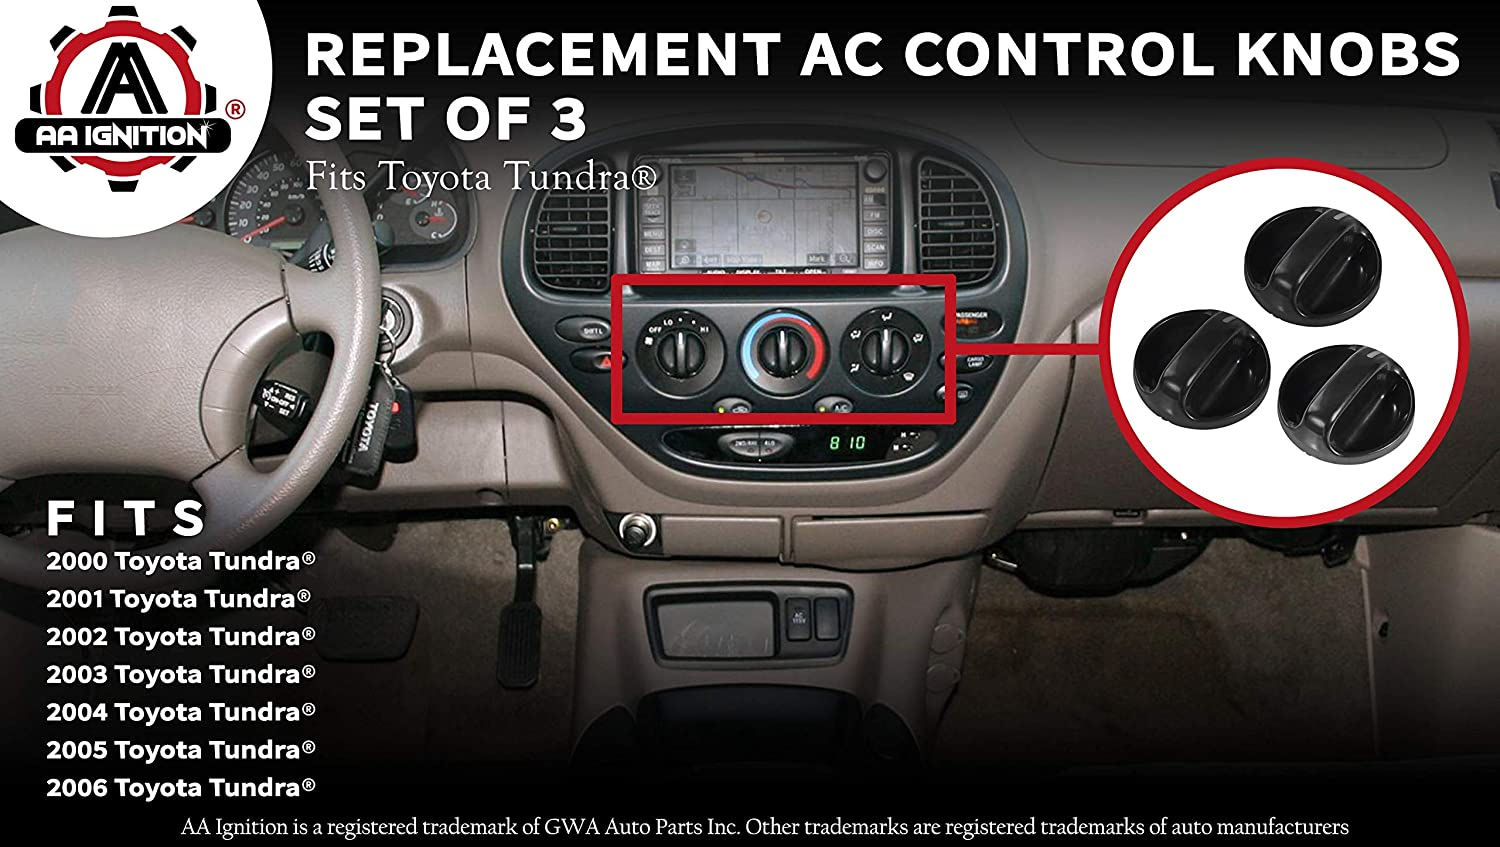 AC Climate Control Knob - Set of 3 - Replaces 55905-0C010, 559050C010 -  Fits Toyota Tundra 2000, 2001, 2002, 2003, 2004, 2005, 2006 - Air  Conditioner